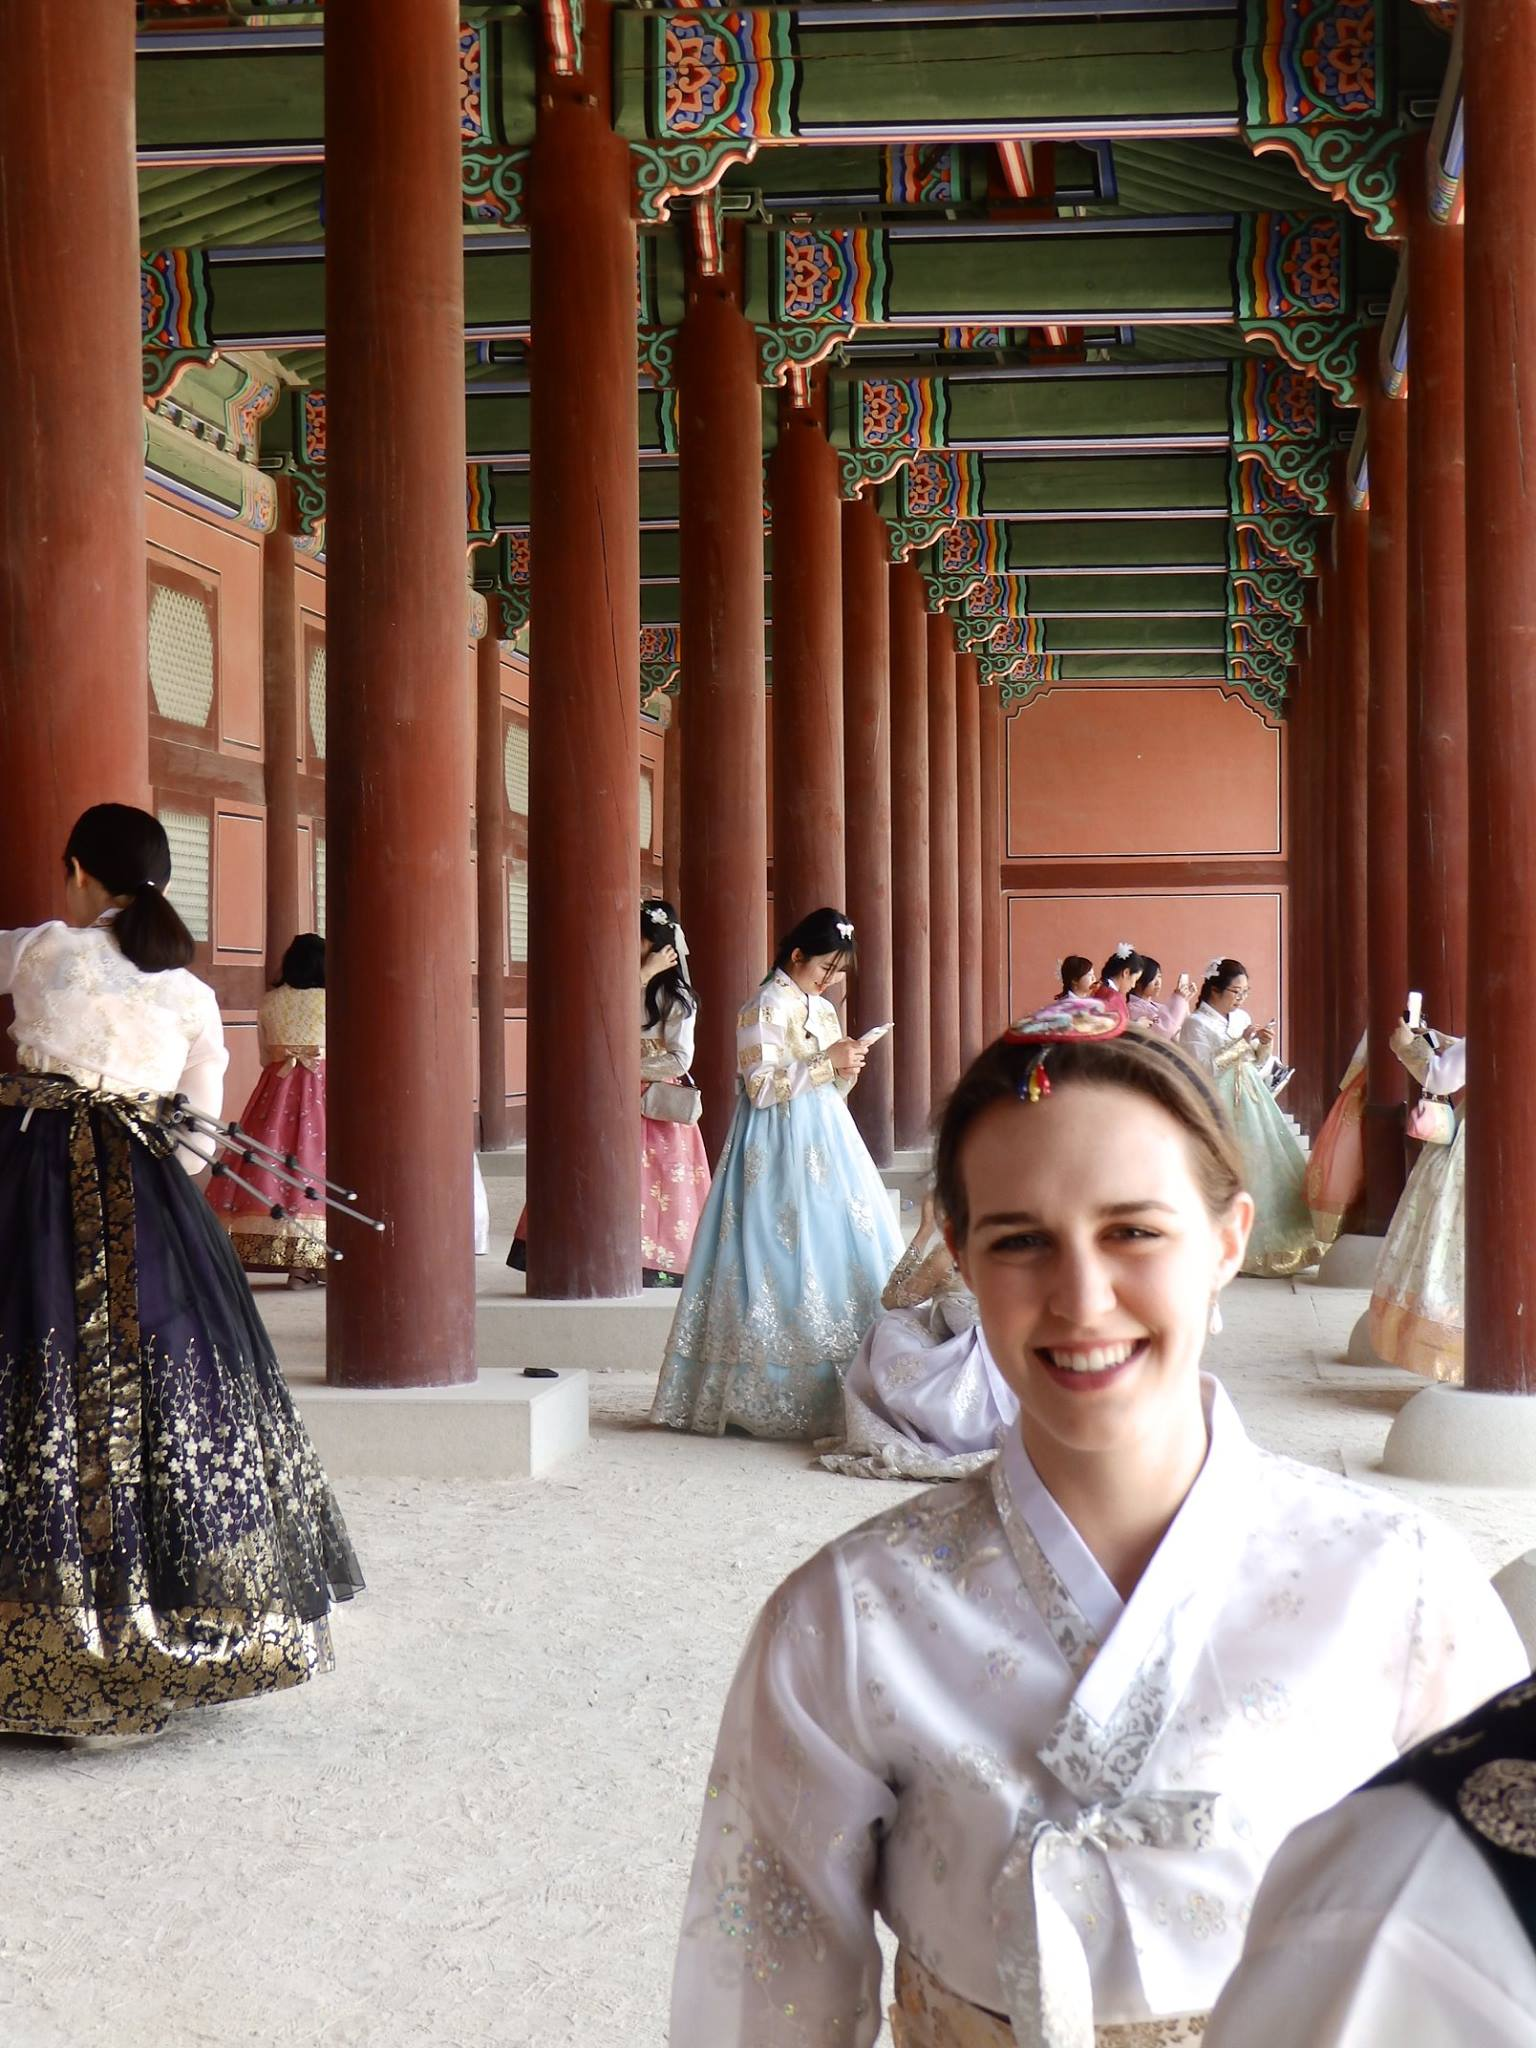 Myself in Hanbok and a HORDE of Korean girls taking cute photos at the grand palace in Seoul.